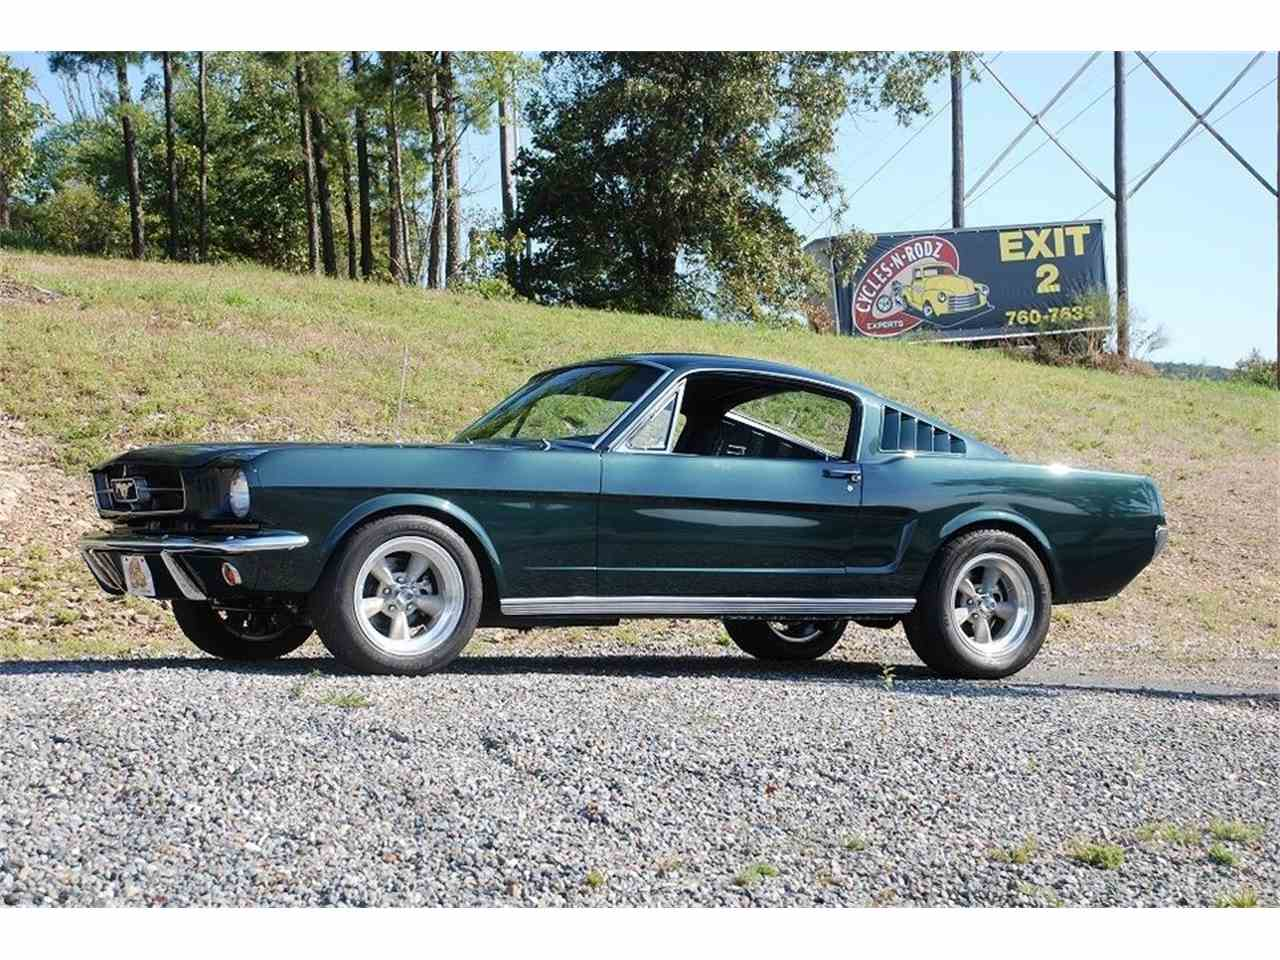 1965 ford mustang for sale cc 1049588 for Springfield registry of motor vehicles